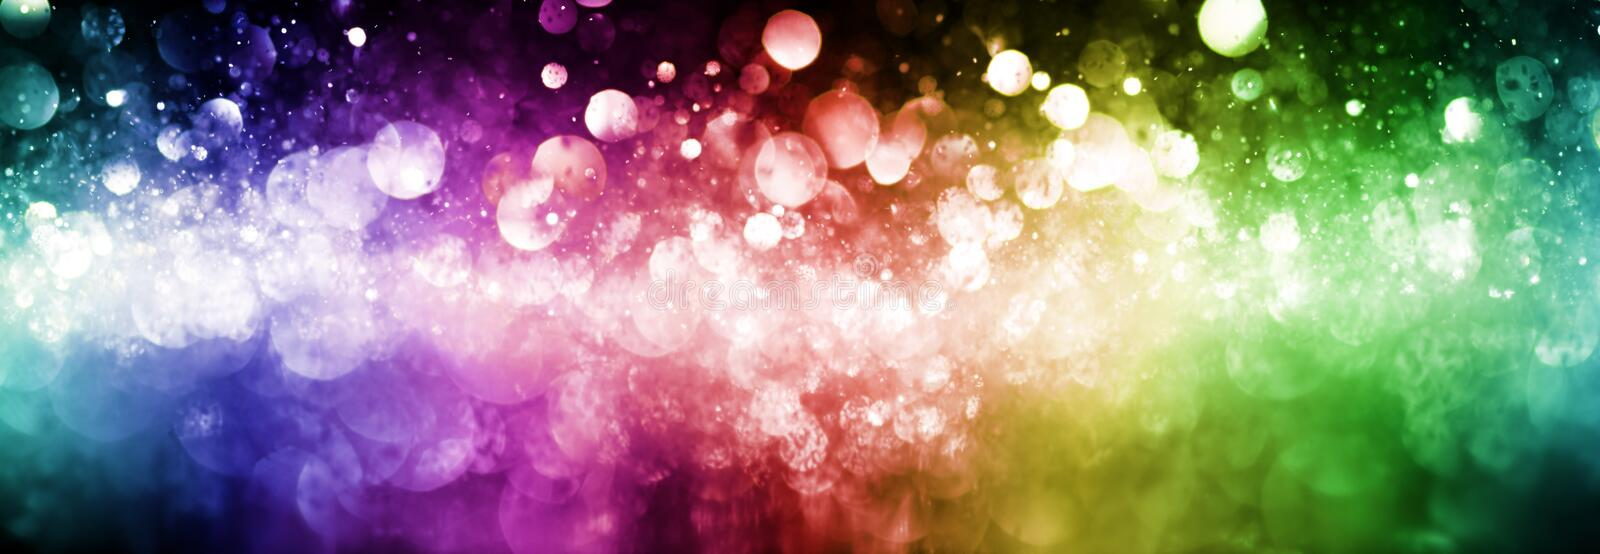 Download Rainbow Of Sparkling Glittering Lights Abstract Stock Photo - Image: 100815684